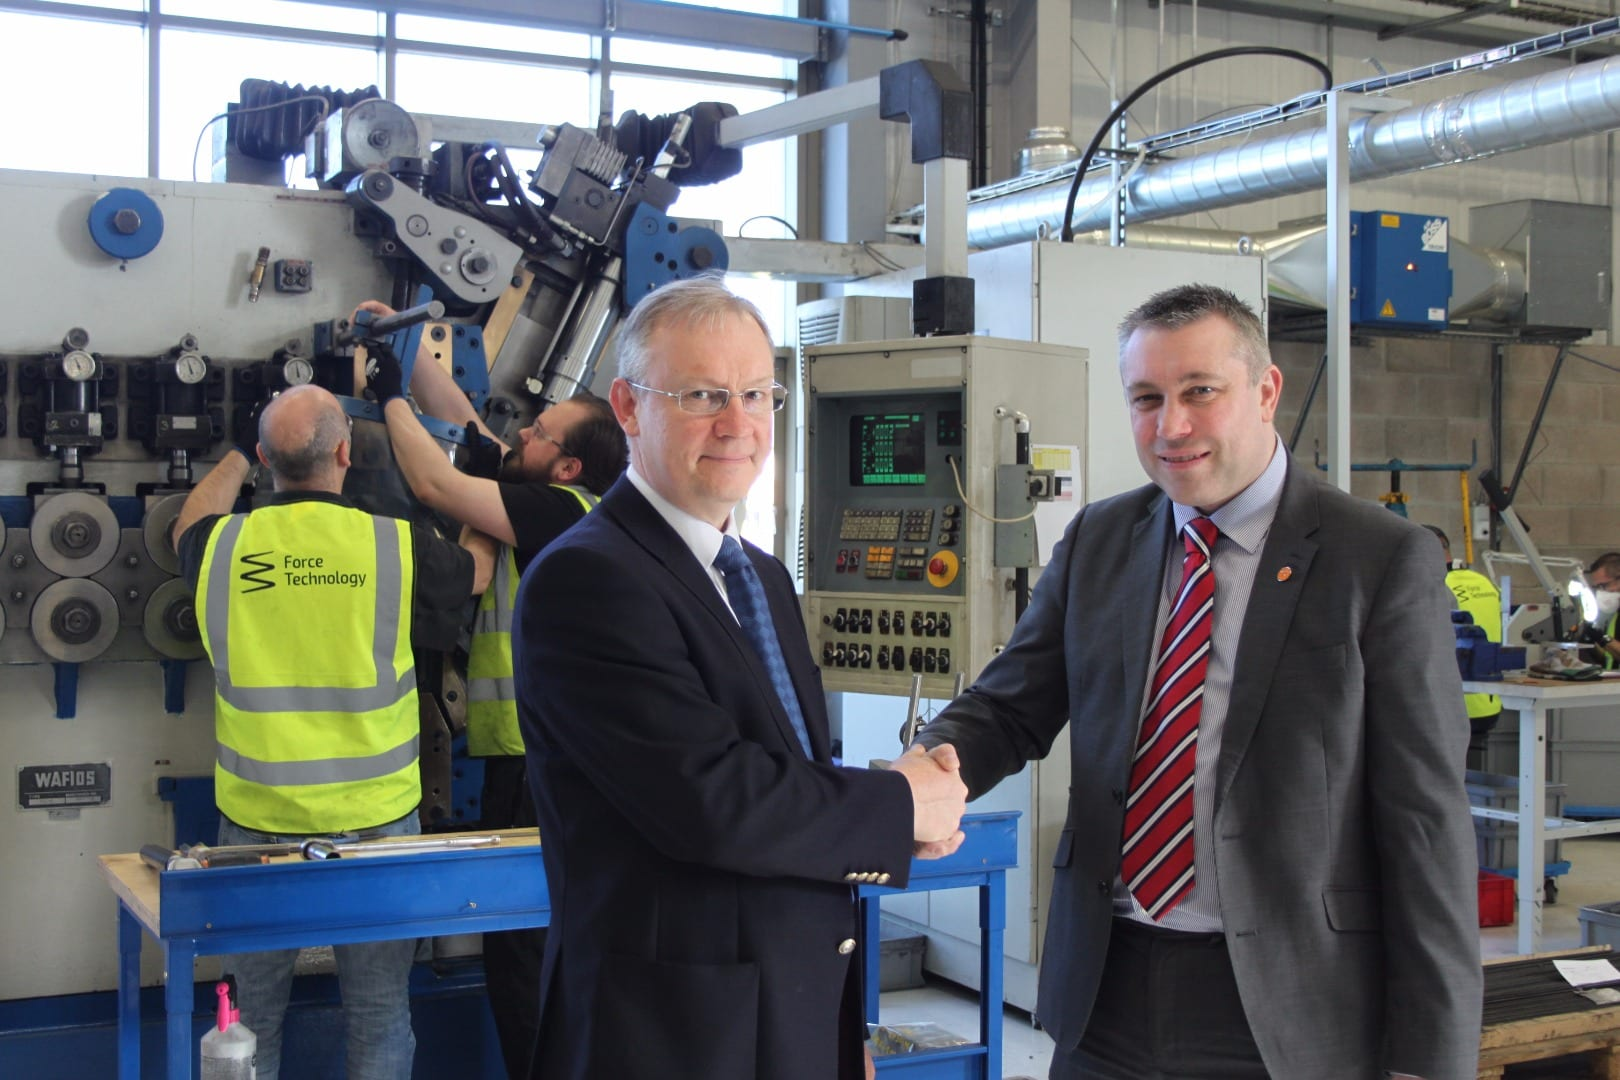 (L-R) Steve Williams, MD, Force Technology with Cllr Mark Smith, Blackpool Council's Cabinet Member for Business and Economic Development.